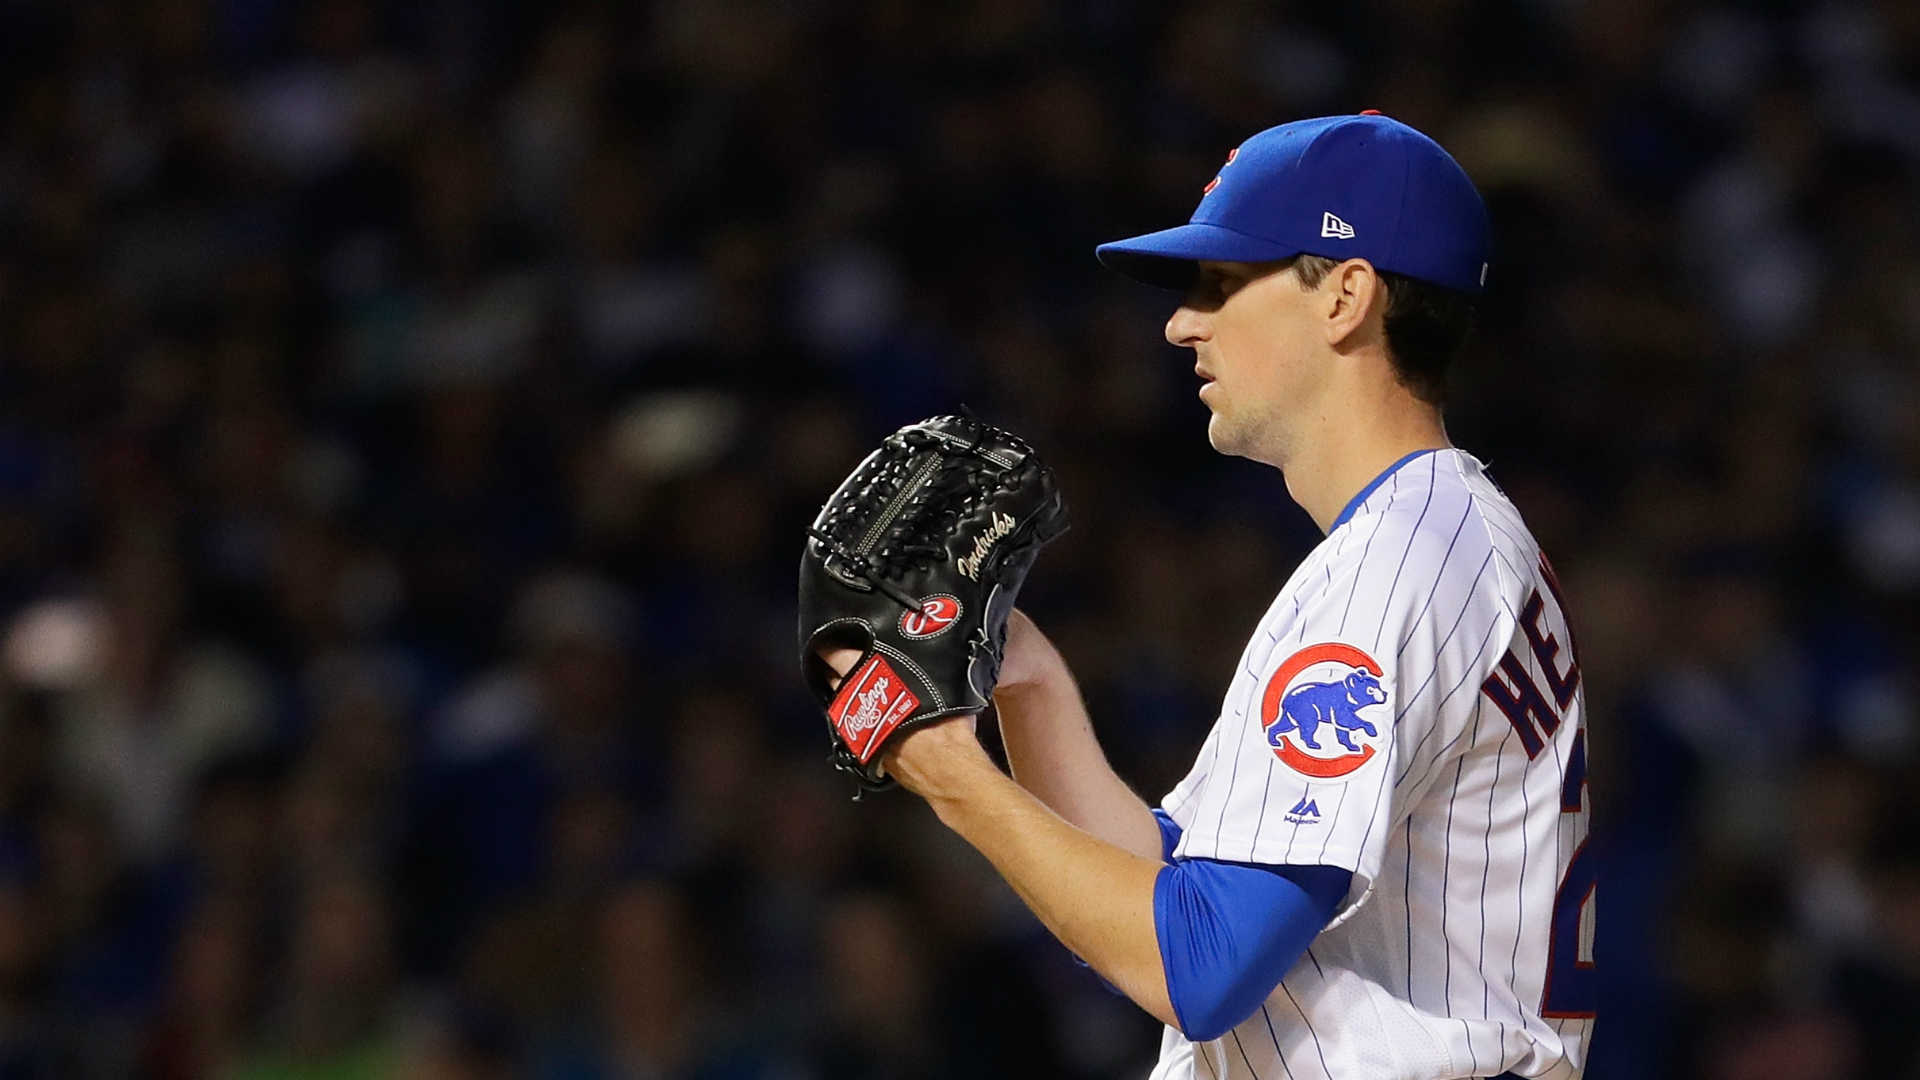 Kyle Hendricks makes history for the Cubs with his first historic bad play and the Braves